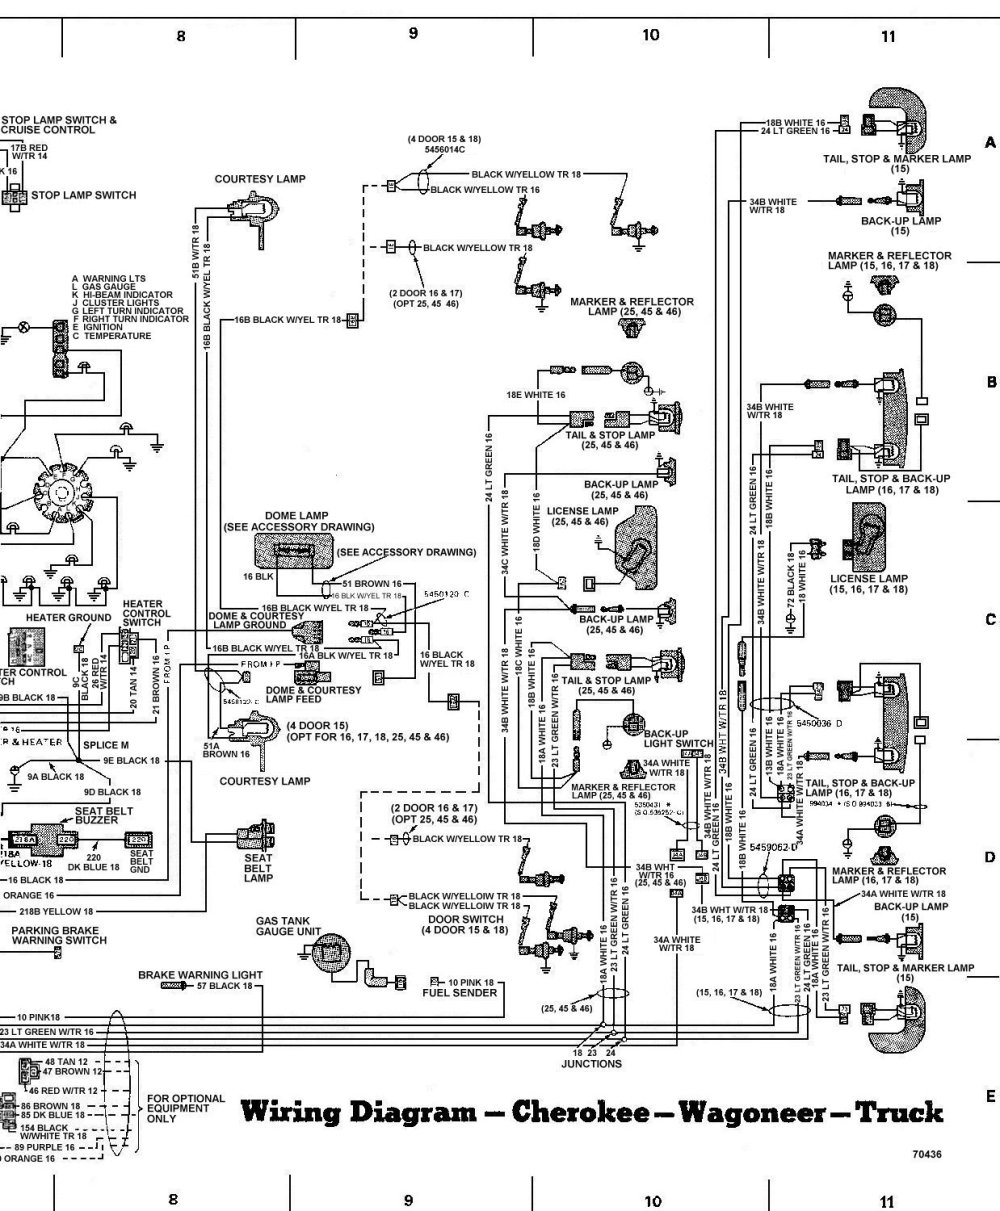 medium resolution of 1987 jeep cherokee wiring diagram schematic wiring diagrams rh 13 koch foerderbandtrommeln de 1996 jeep grand cherokee starter 2001 jeep grand cherokee